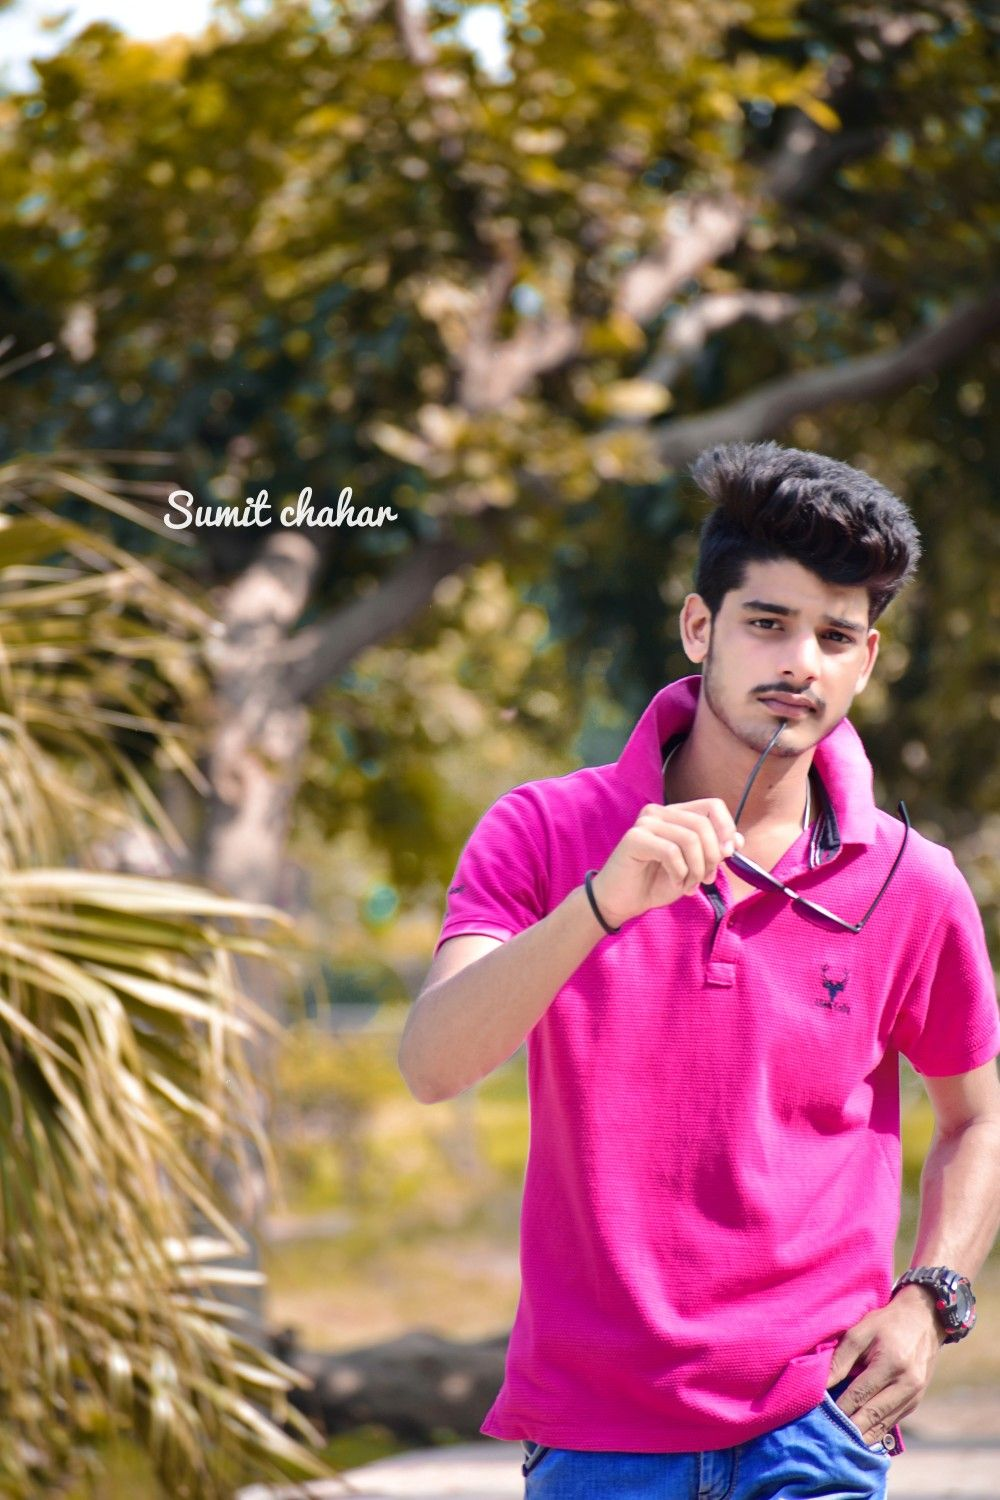 Sumit Chahar Model Actor Pose For Photography Photoshoot Pose Boy Photography Poses For Men Boy Photography Poses